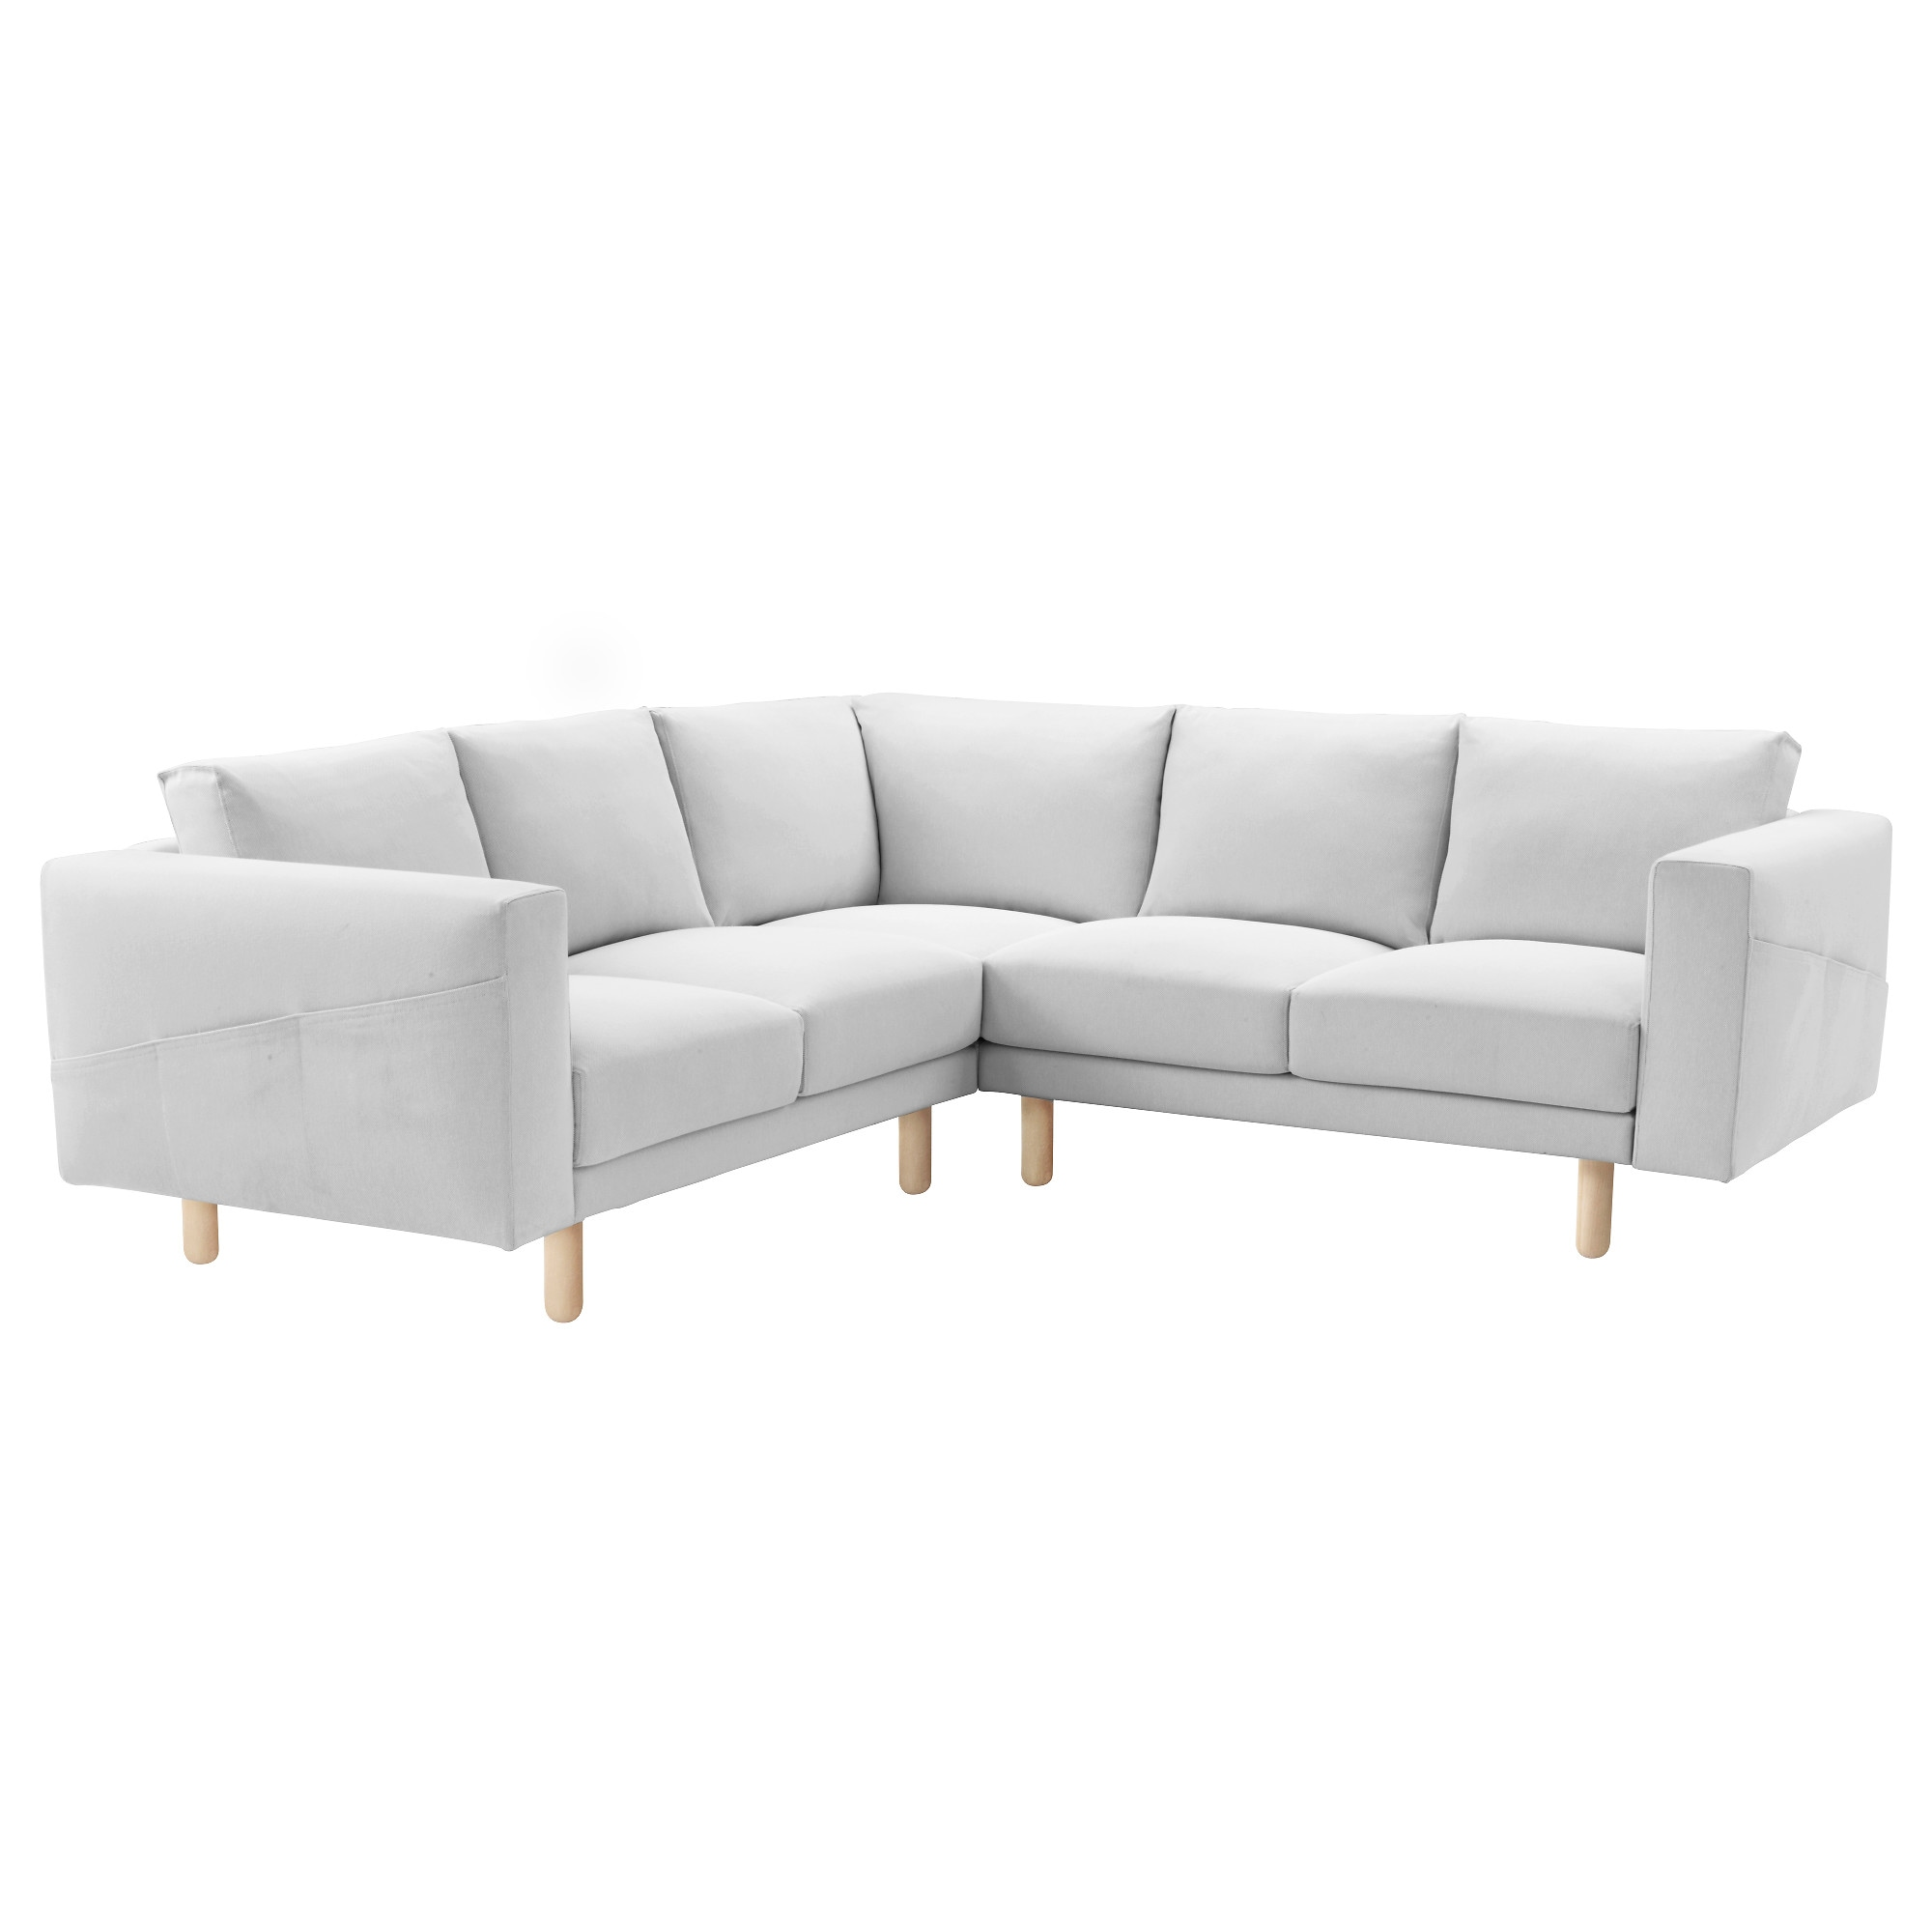 NORSBORG Cover for 4 seat corner sectional Finnsta white IKEA